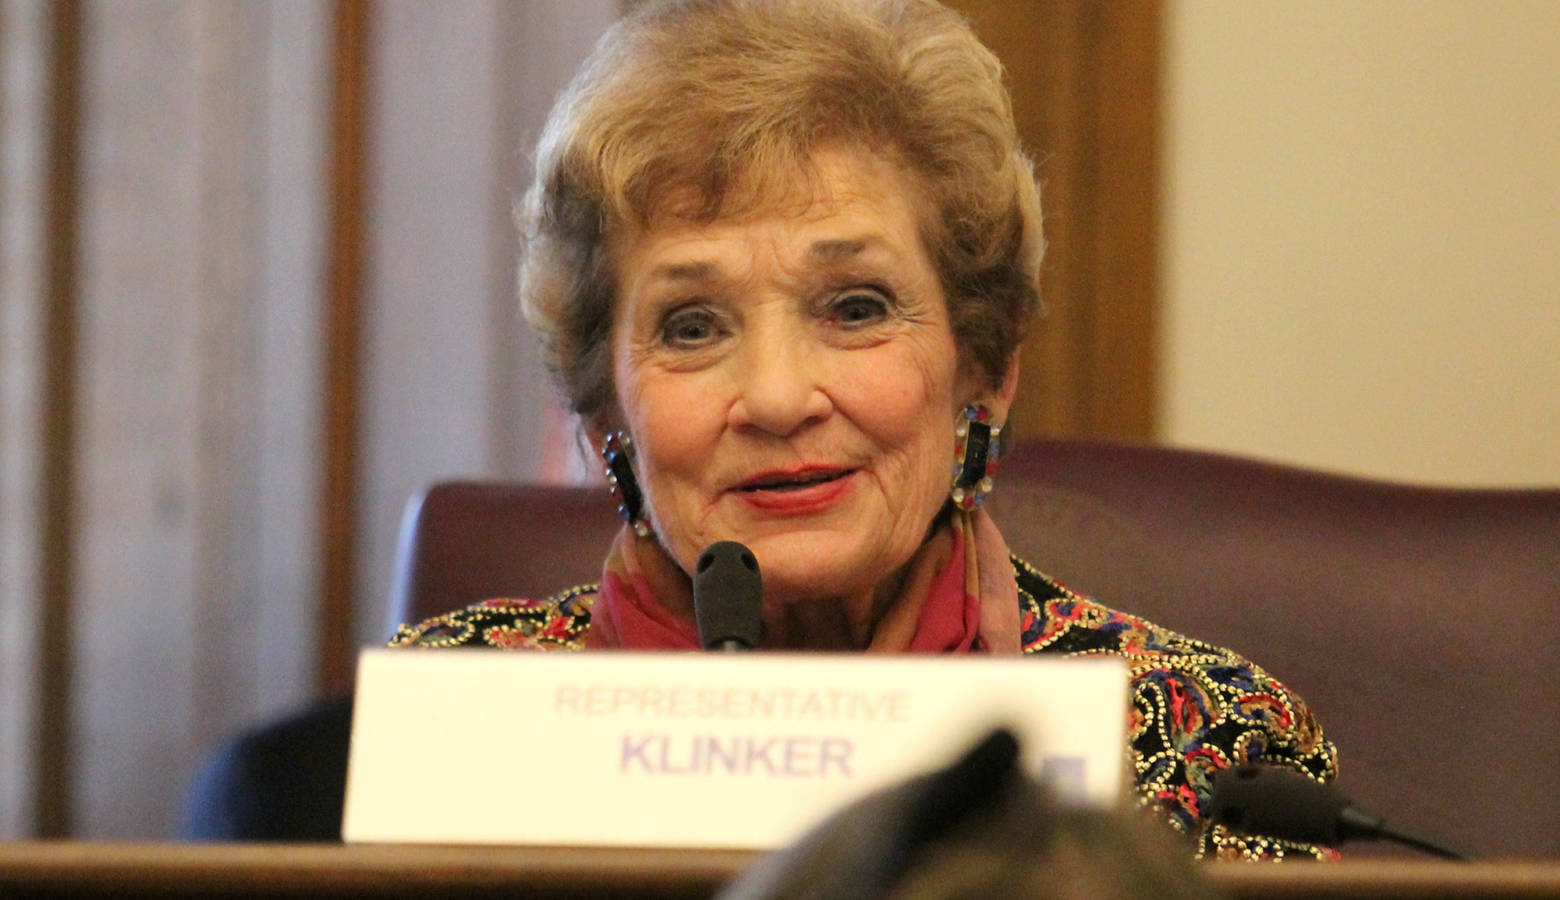 Rep. Sheila Klinker (D-Lafayette) says the state must address the burgeoning use of e-cigarettes among young people. (Lauren Chapman/IPB News)